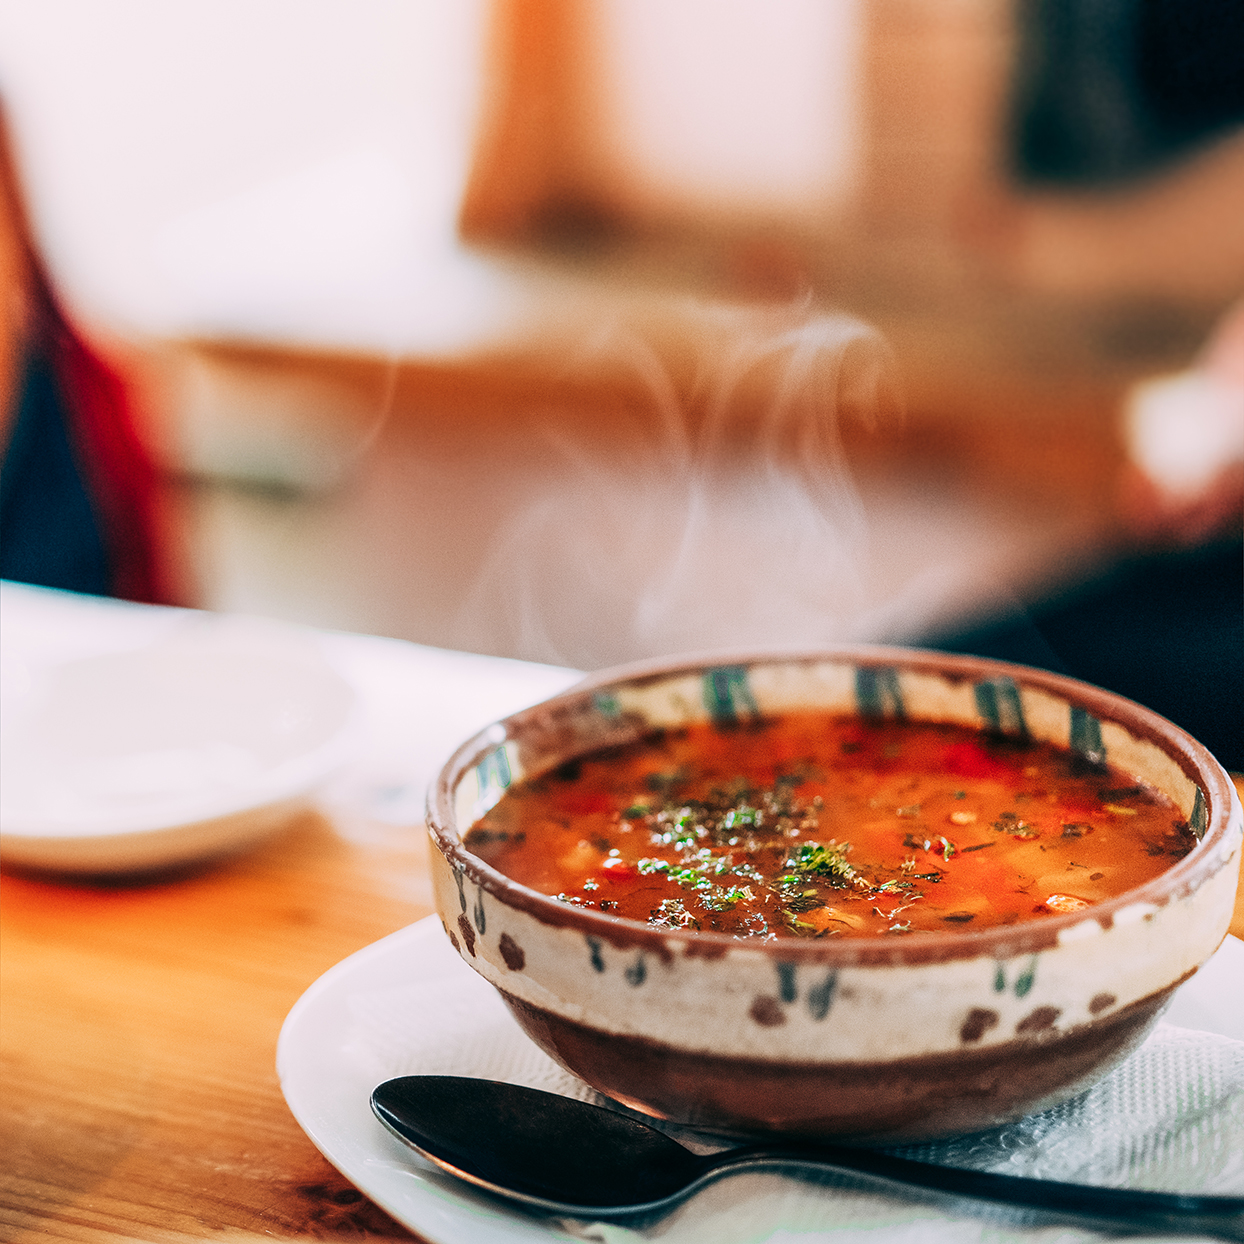 steaming bowl of vegetable soup